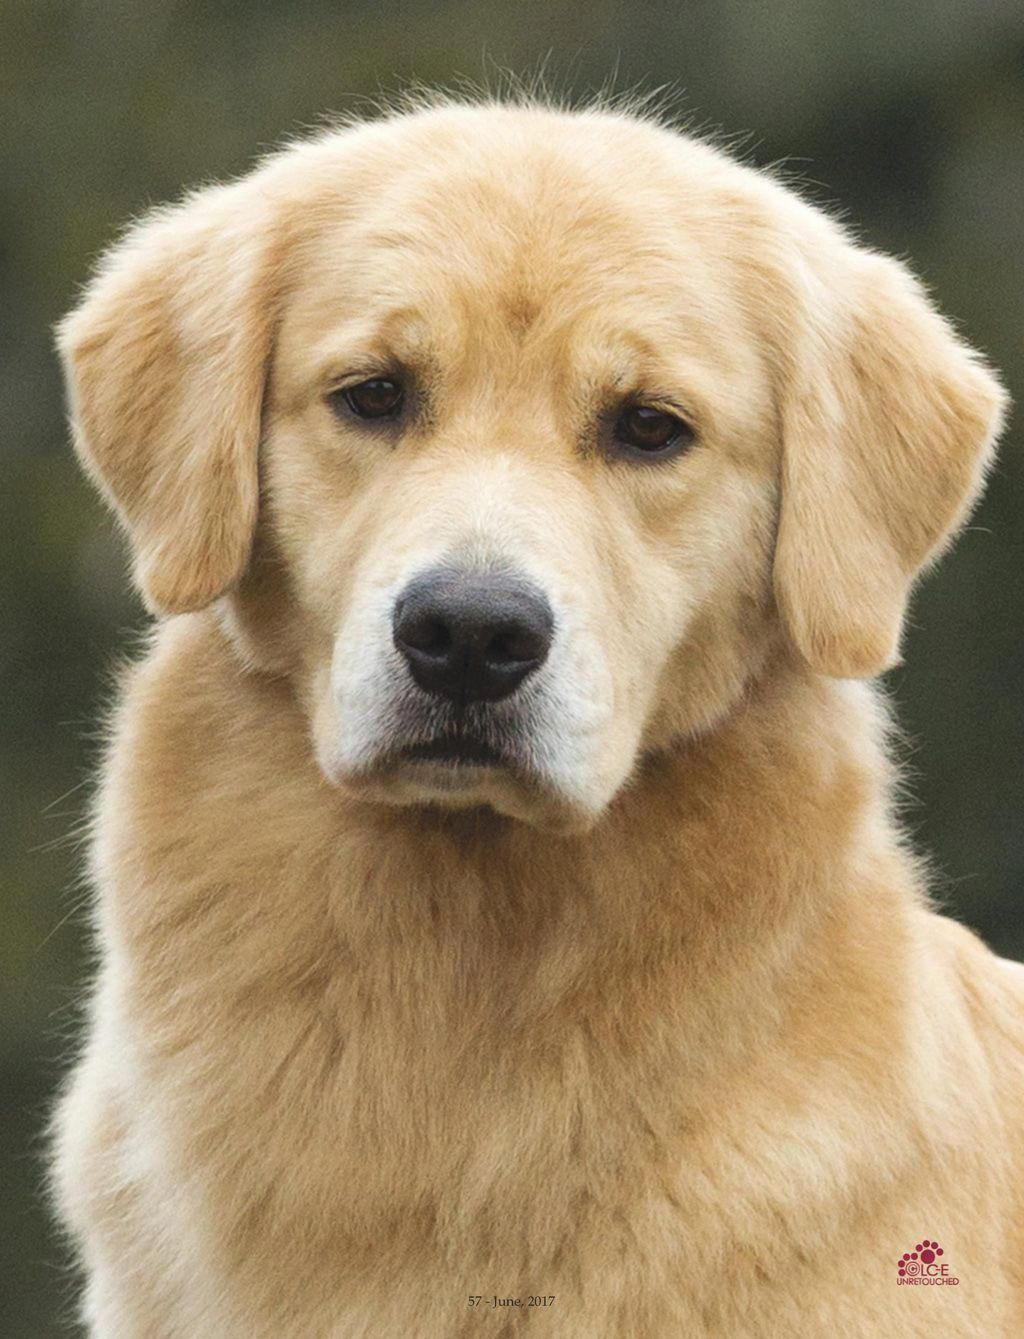 The Traits I Admire About The Outgoing Golden Retriever Puppy